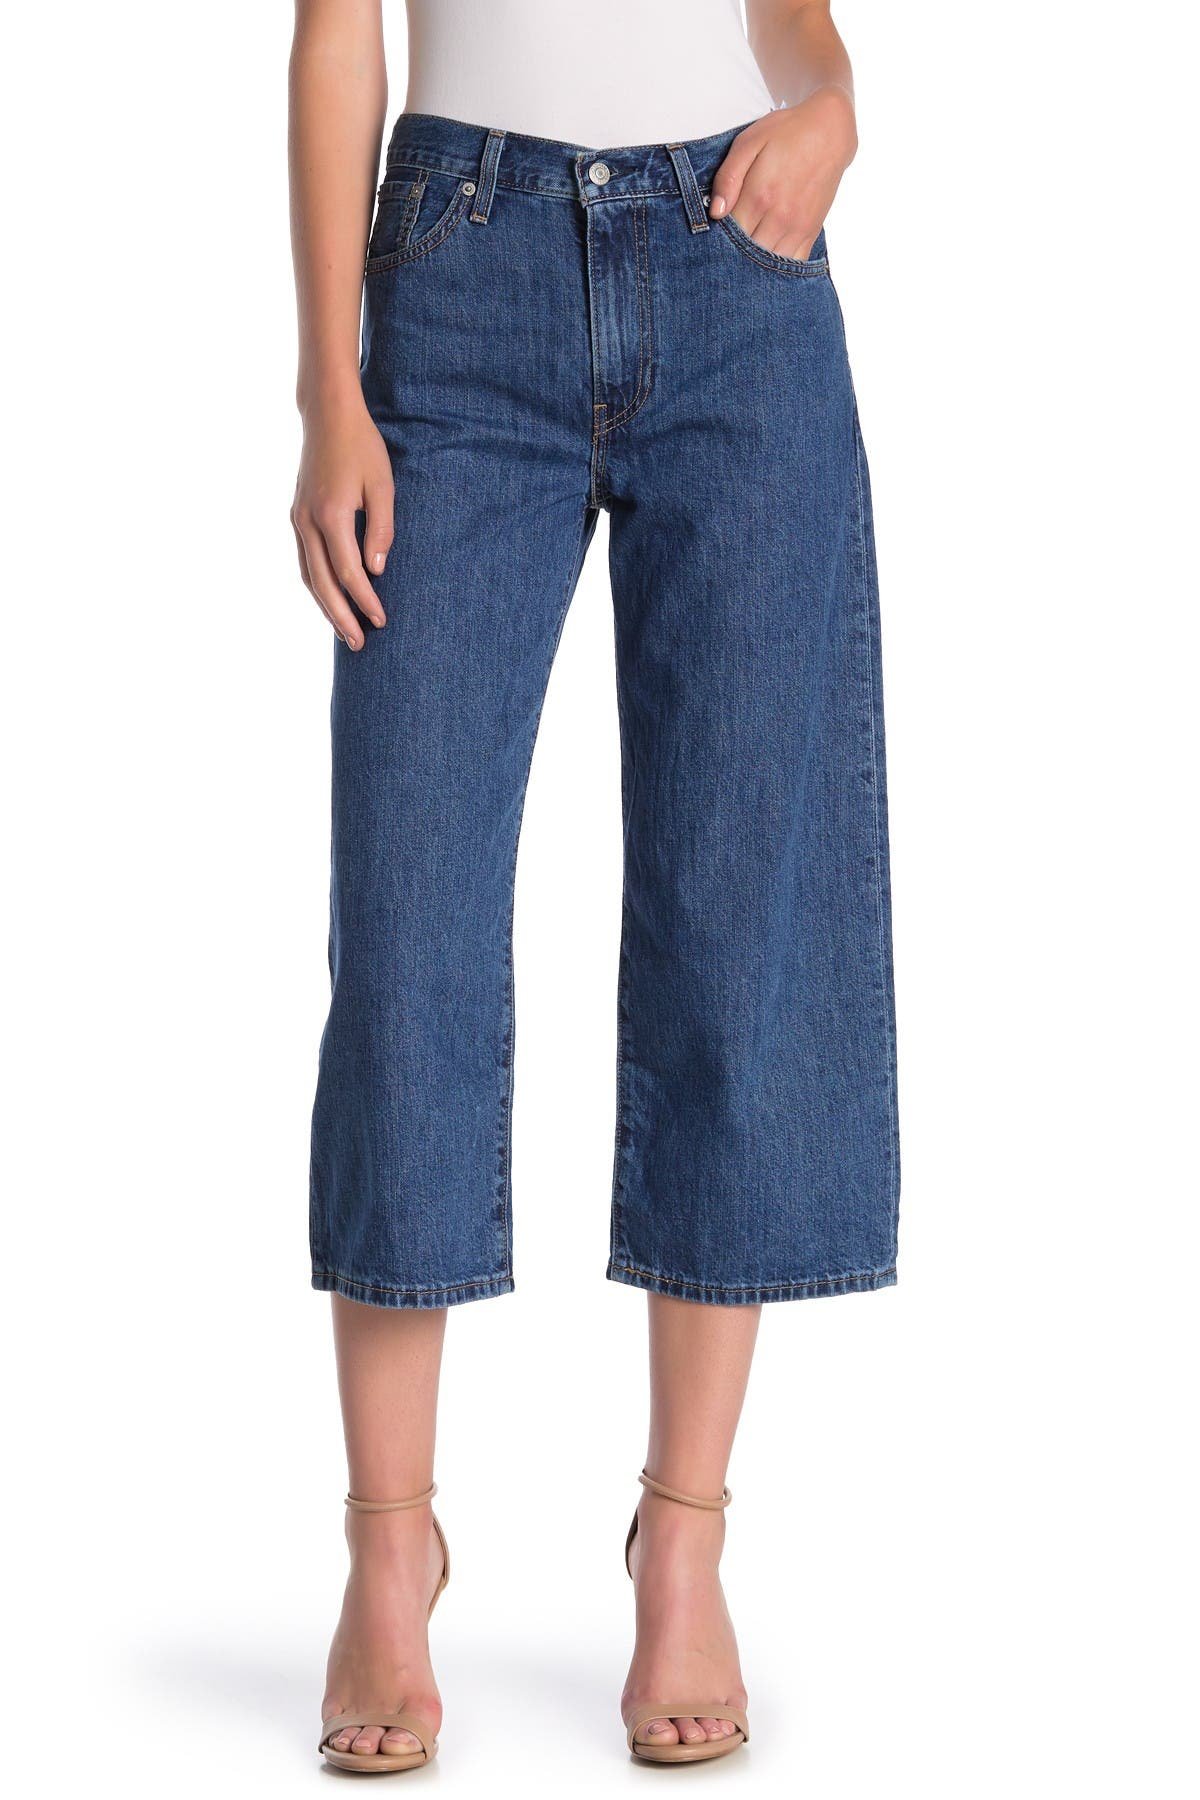 Image of Levi's Baggy Crop Jeans